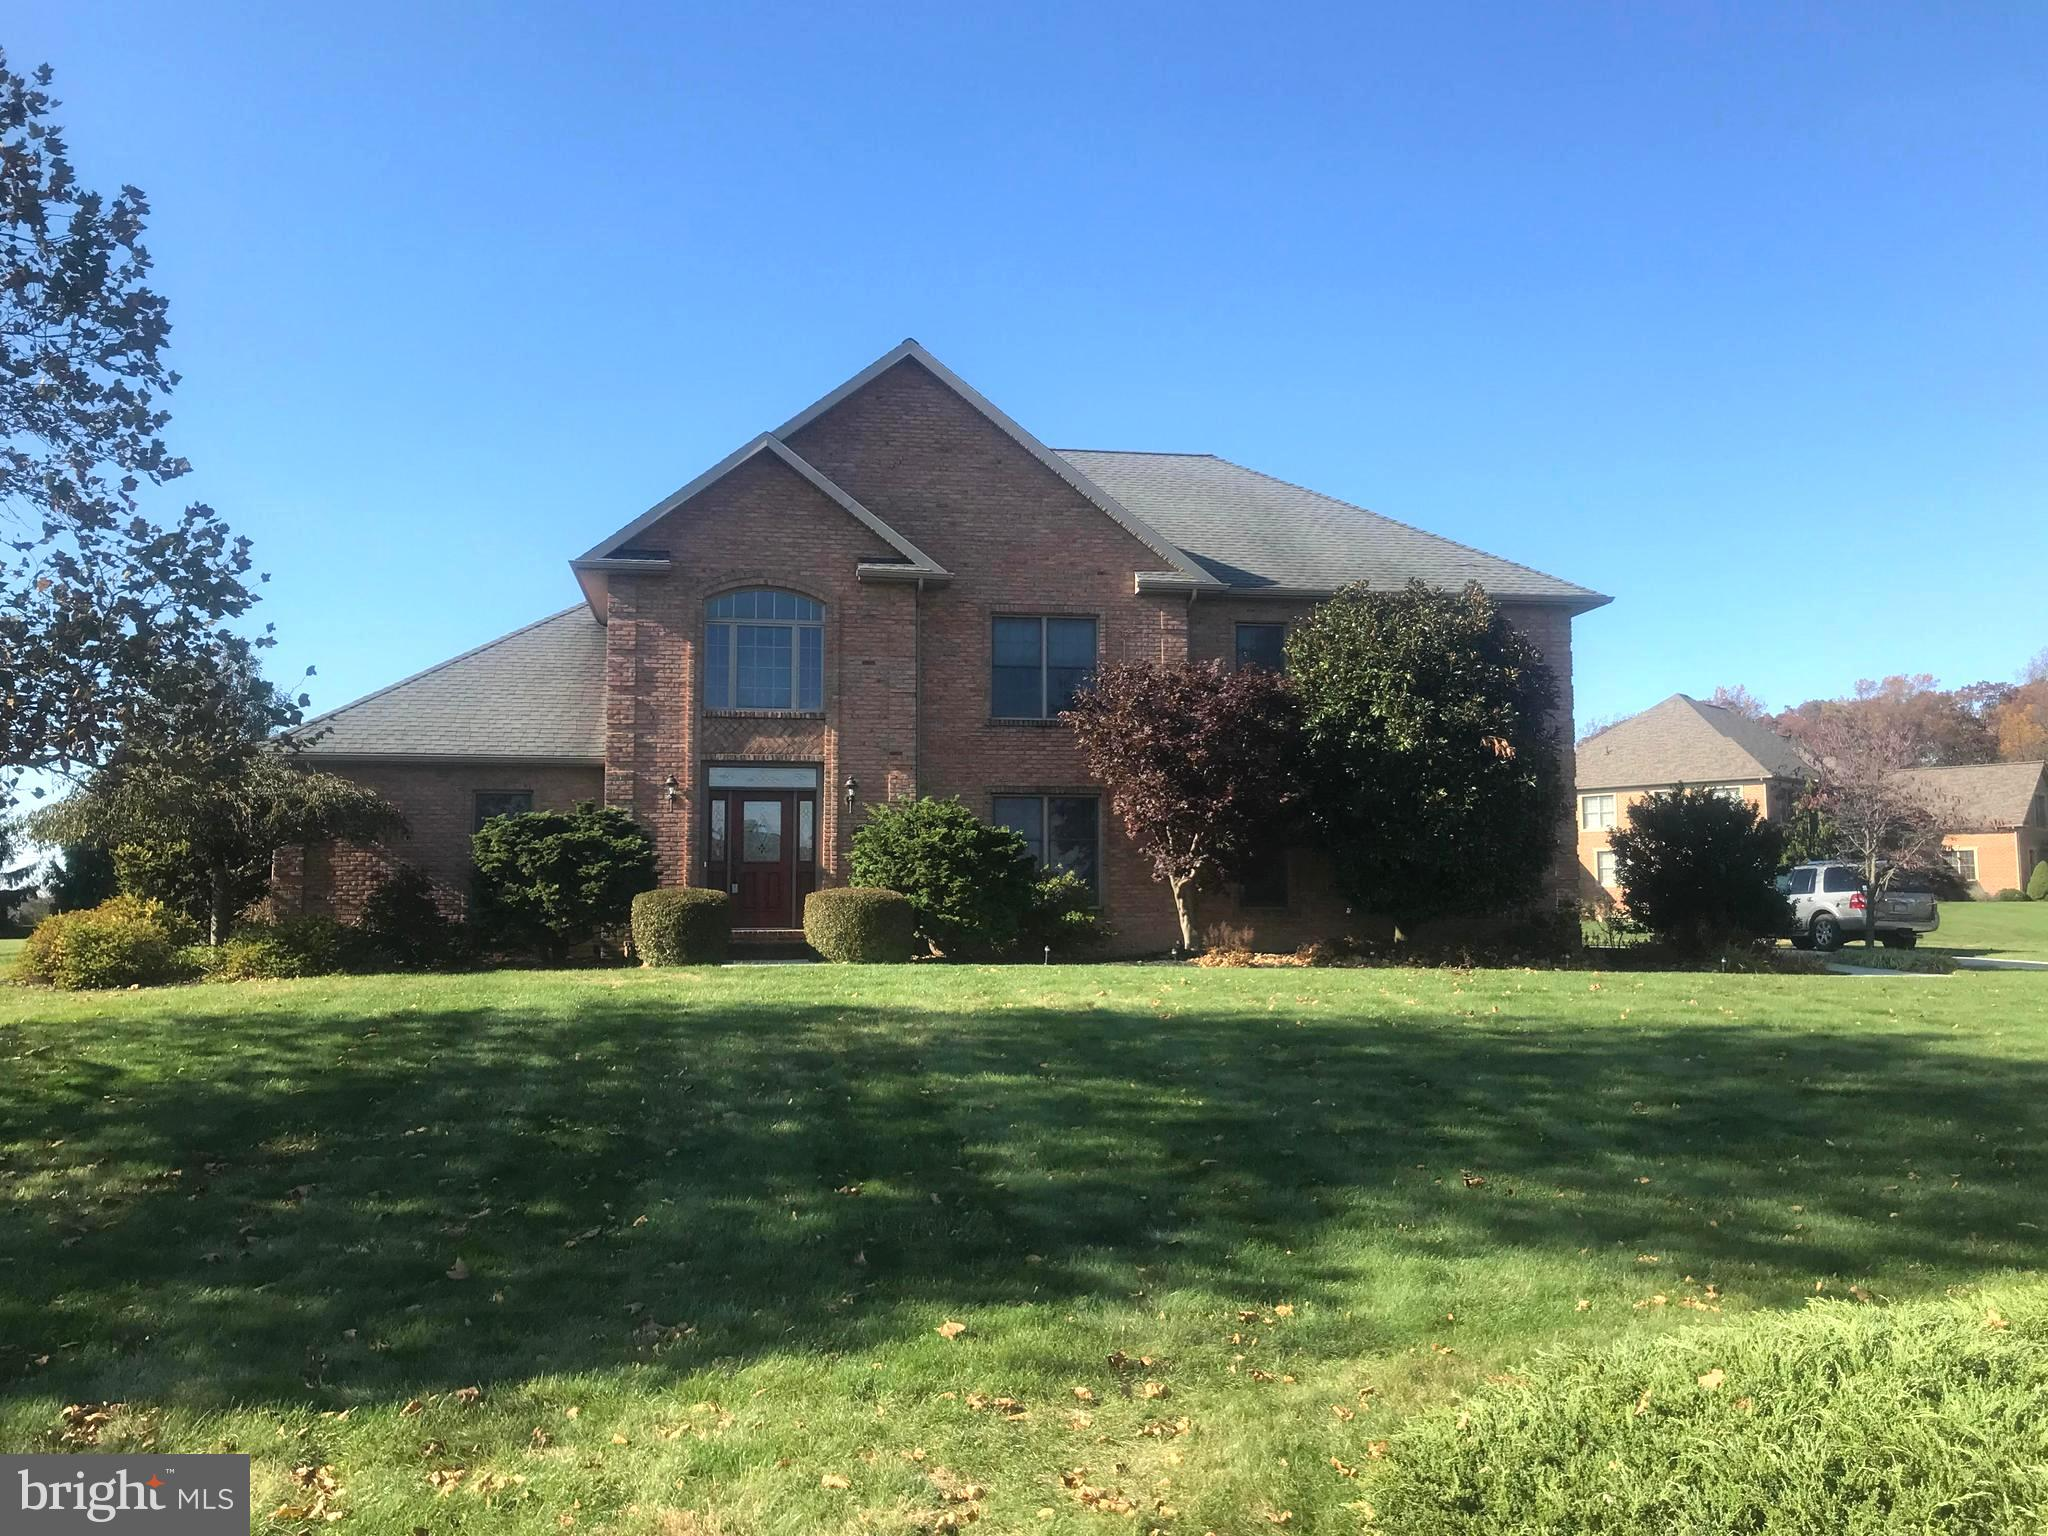 381 THORNHILL DRIVE, HANOVER, PA 17331